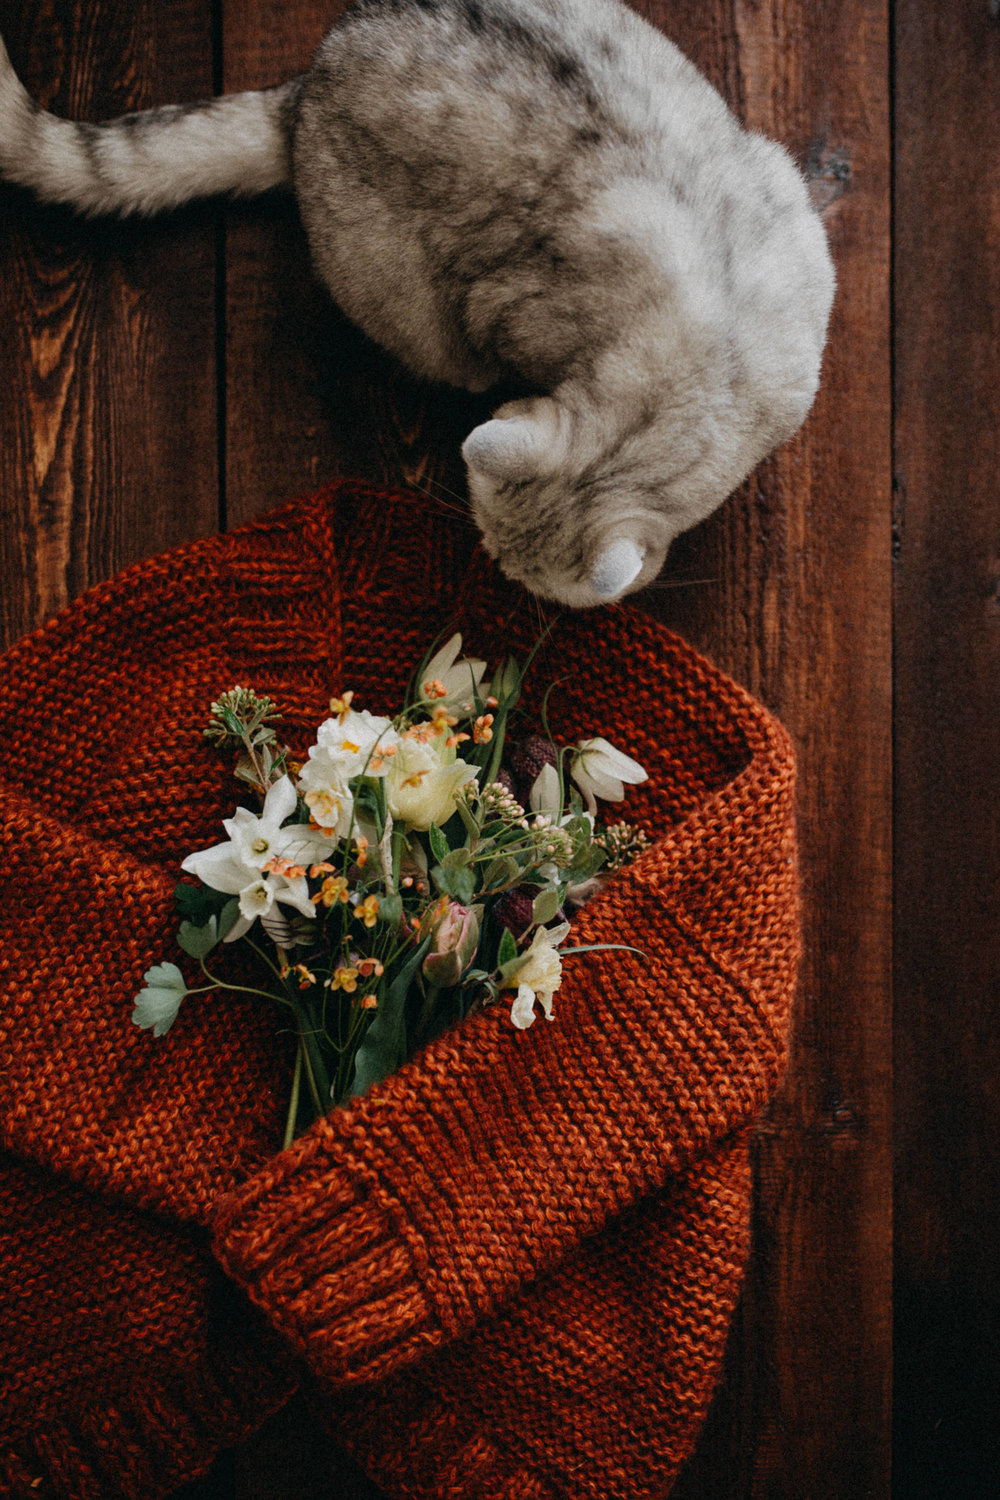 cat-with-flowers